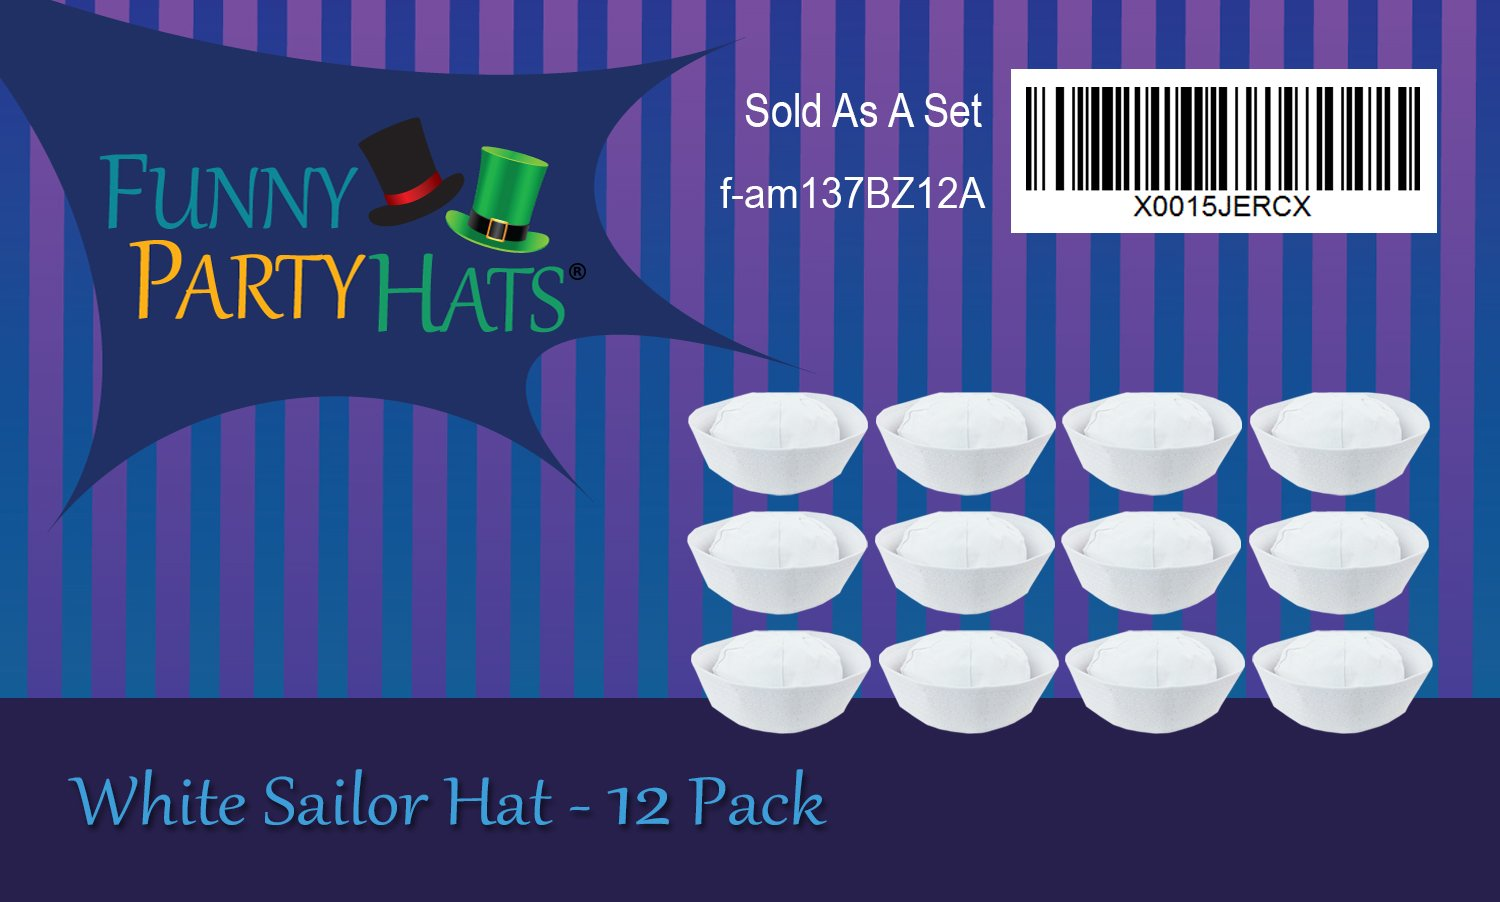 Funny Party Hats Yacht Hat - White Sailor Hats - Sailor Costume Hat by by Funny Party Hats (Image #6)